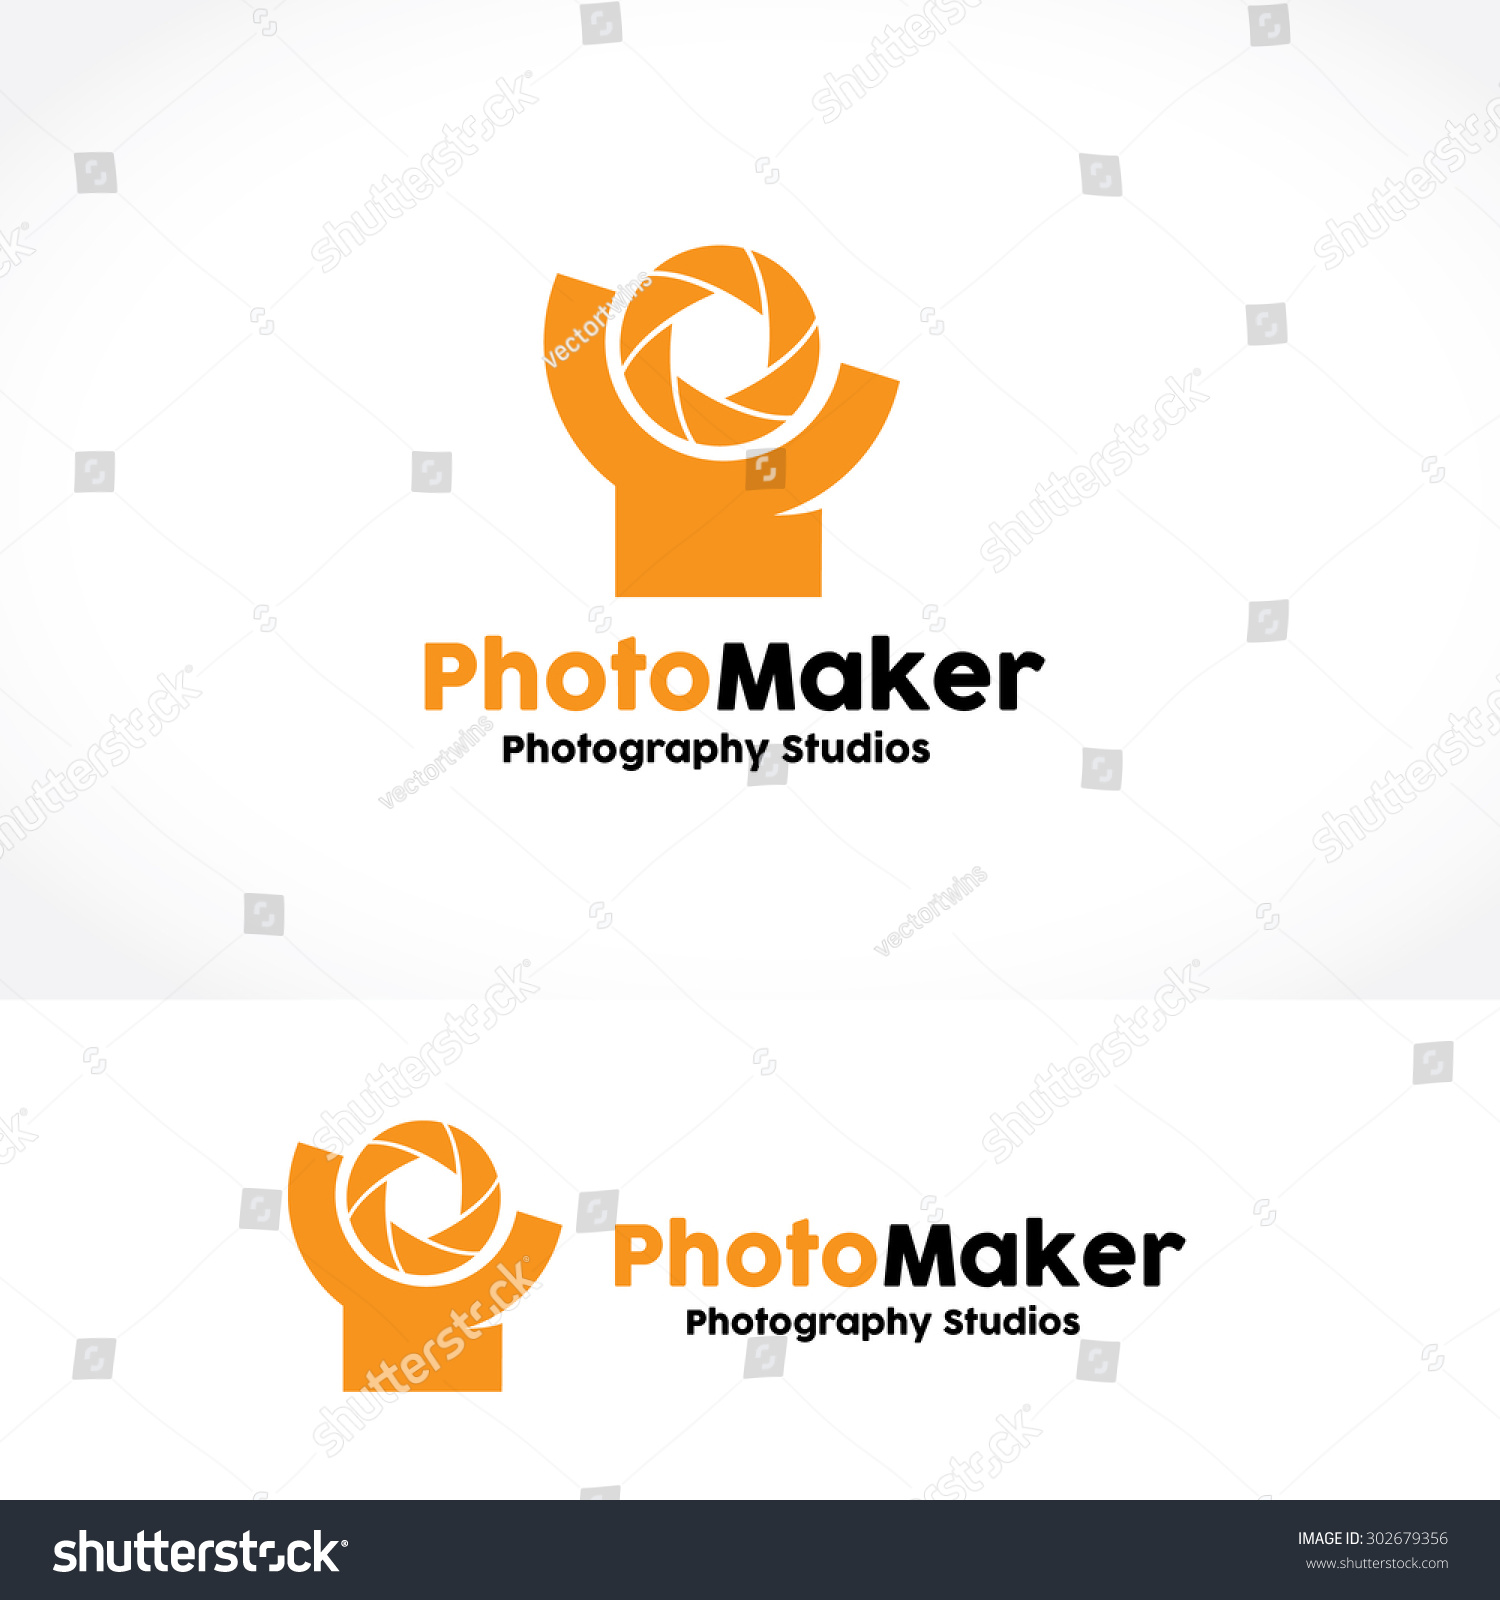 Photography Logo  Free Logo Maker and Generator  Online